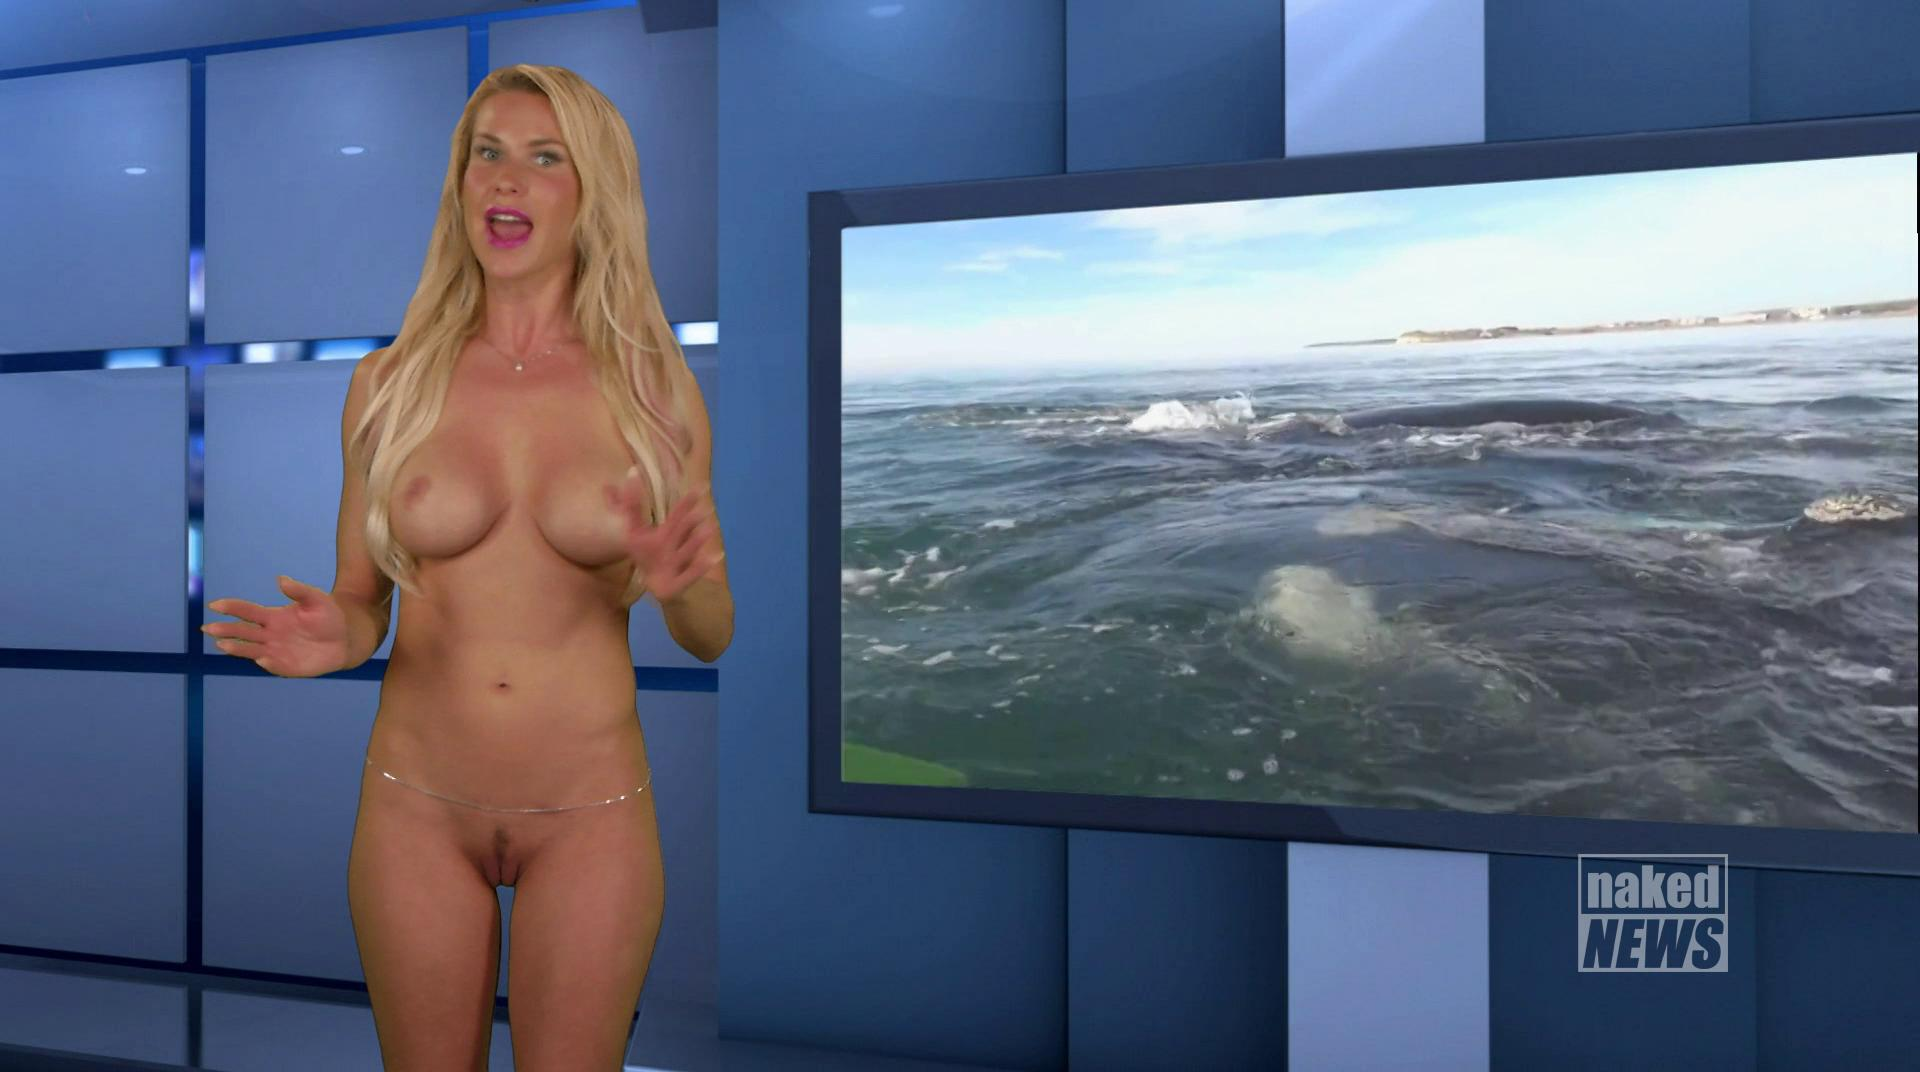 Nude Pics Of Weather Girls